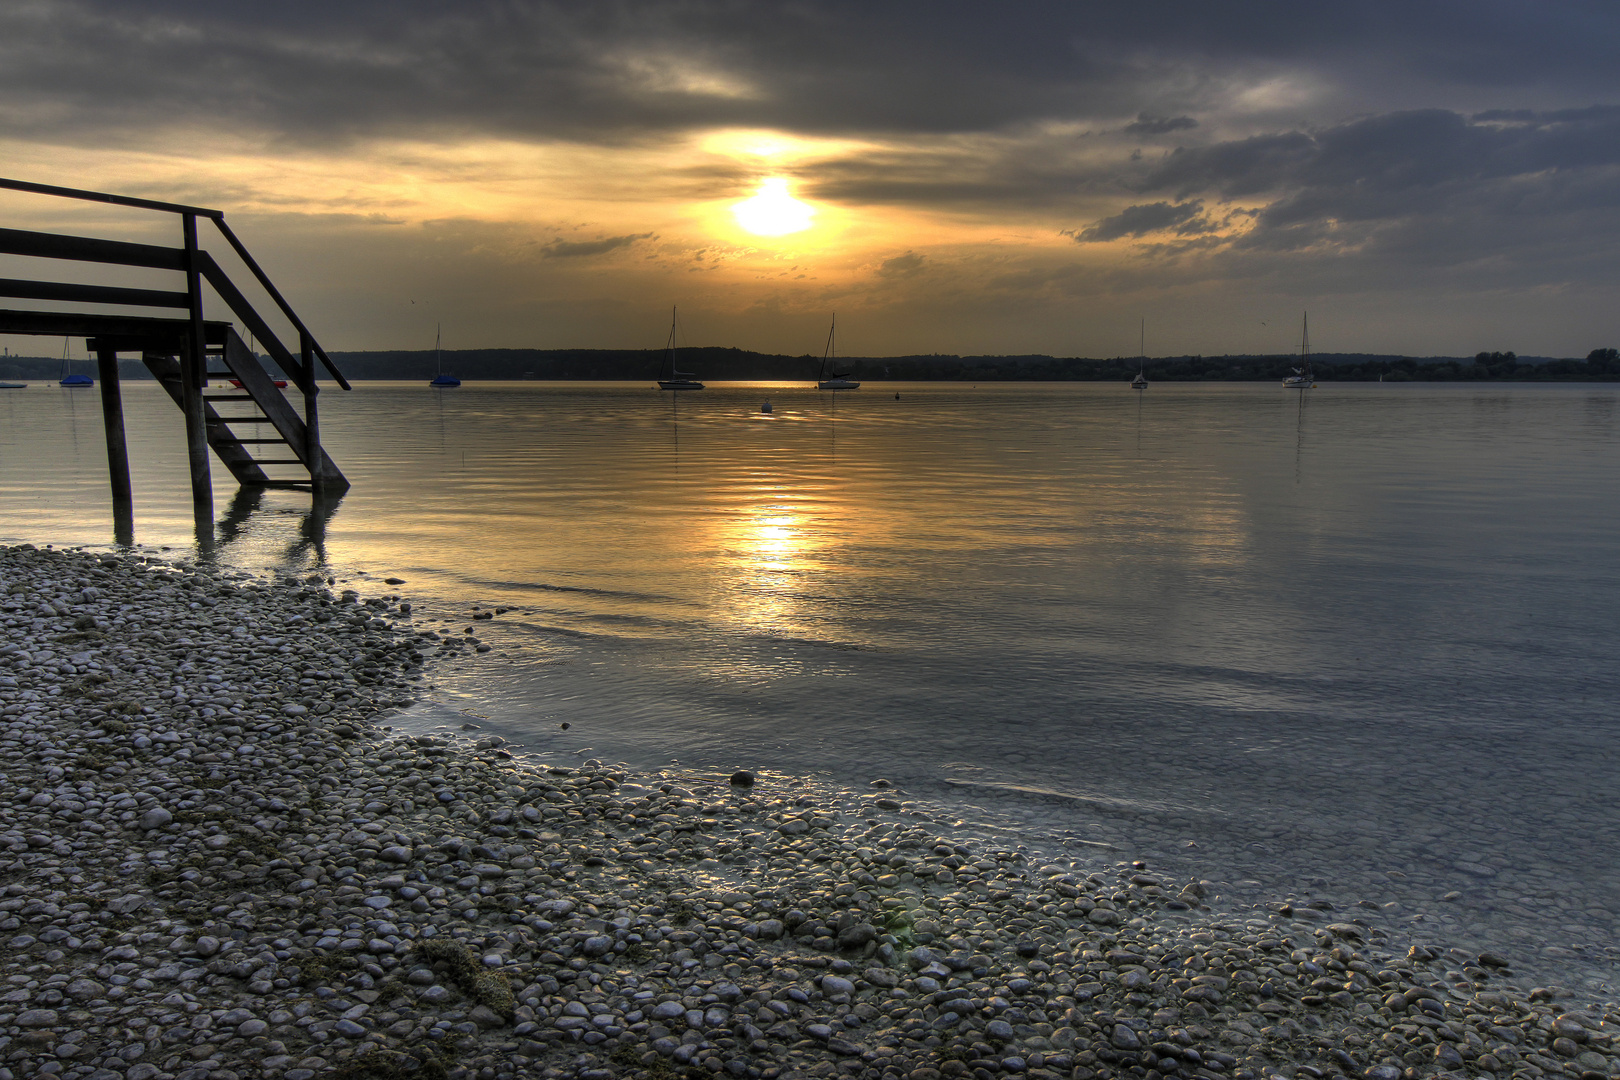 Sommerabend am Ammersee